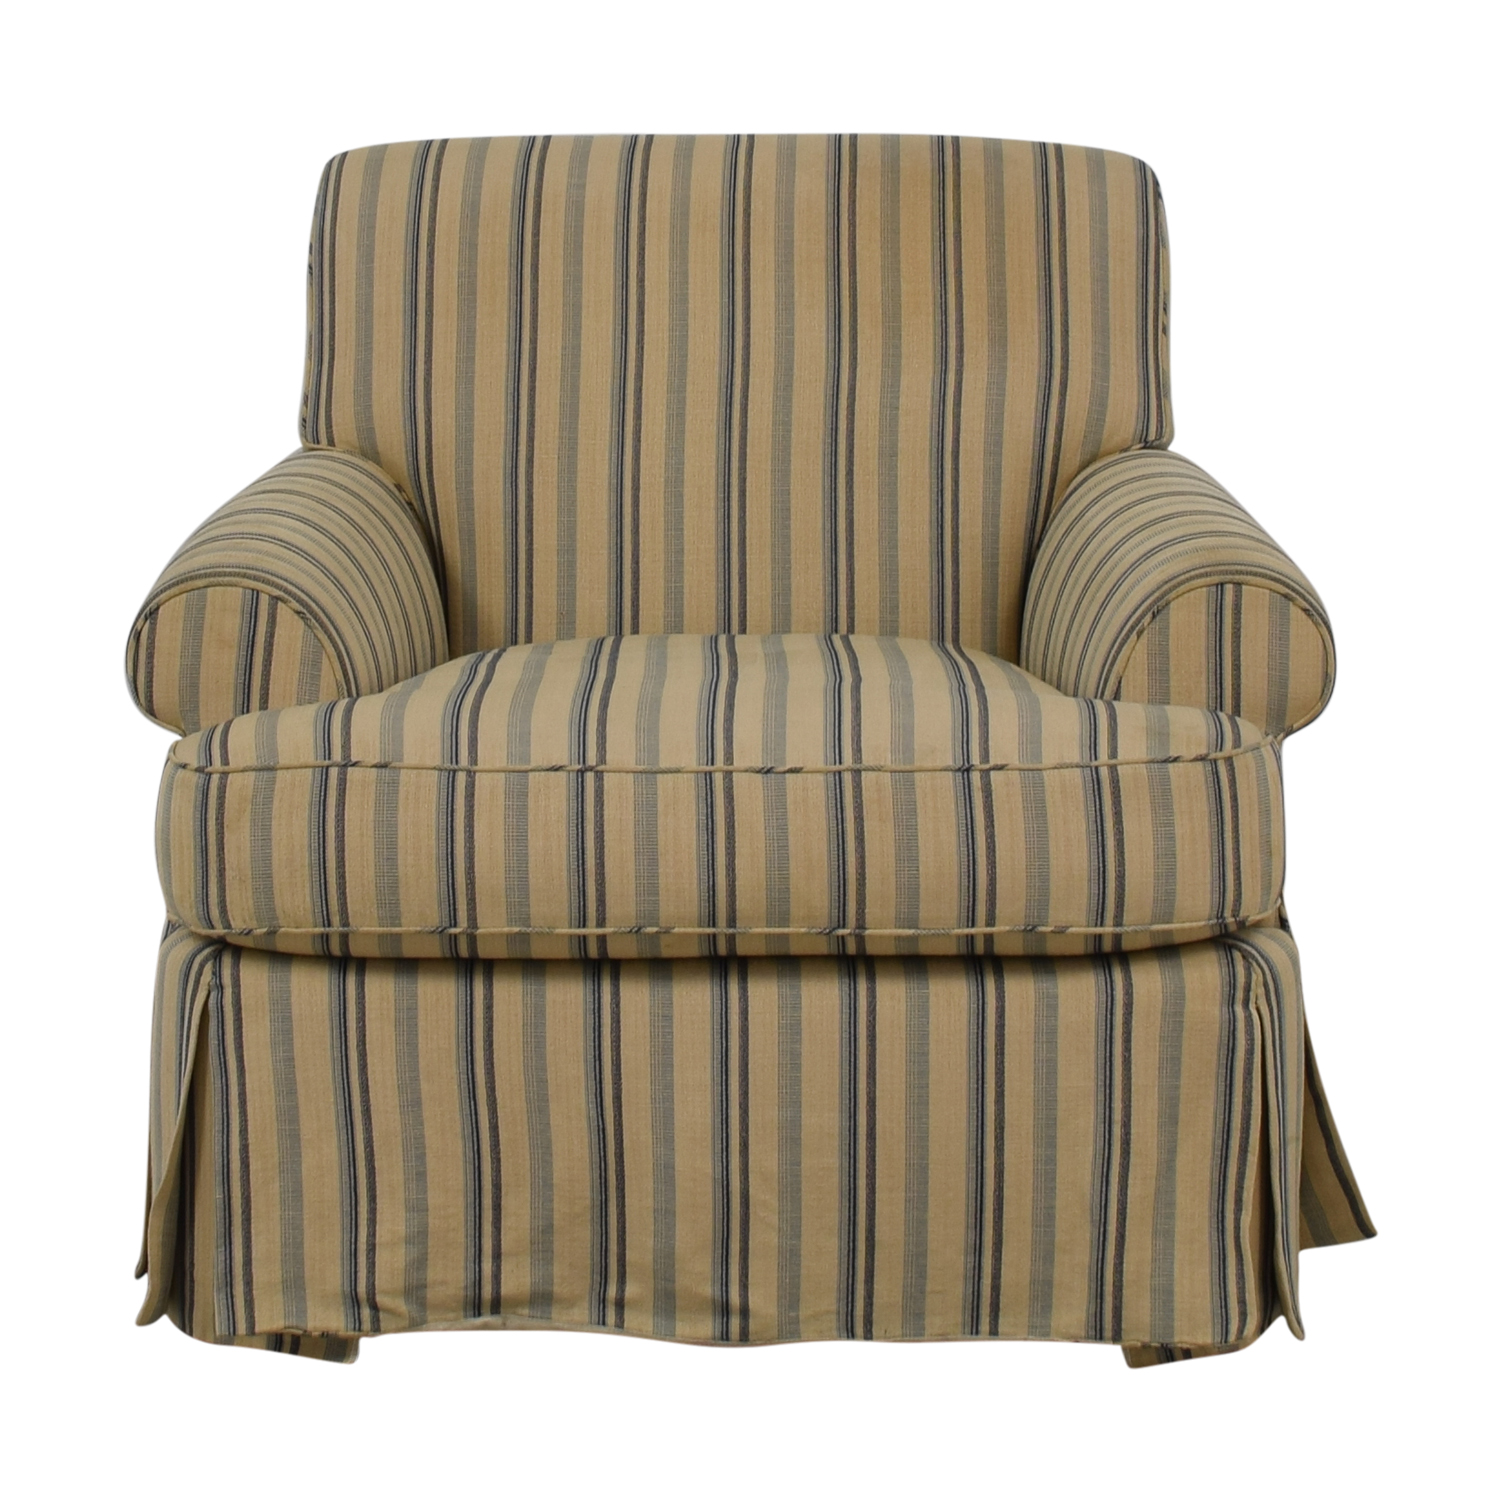 Furniture Masters Stripped Accent Chair sale